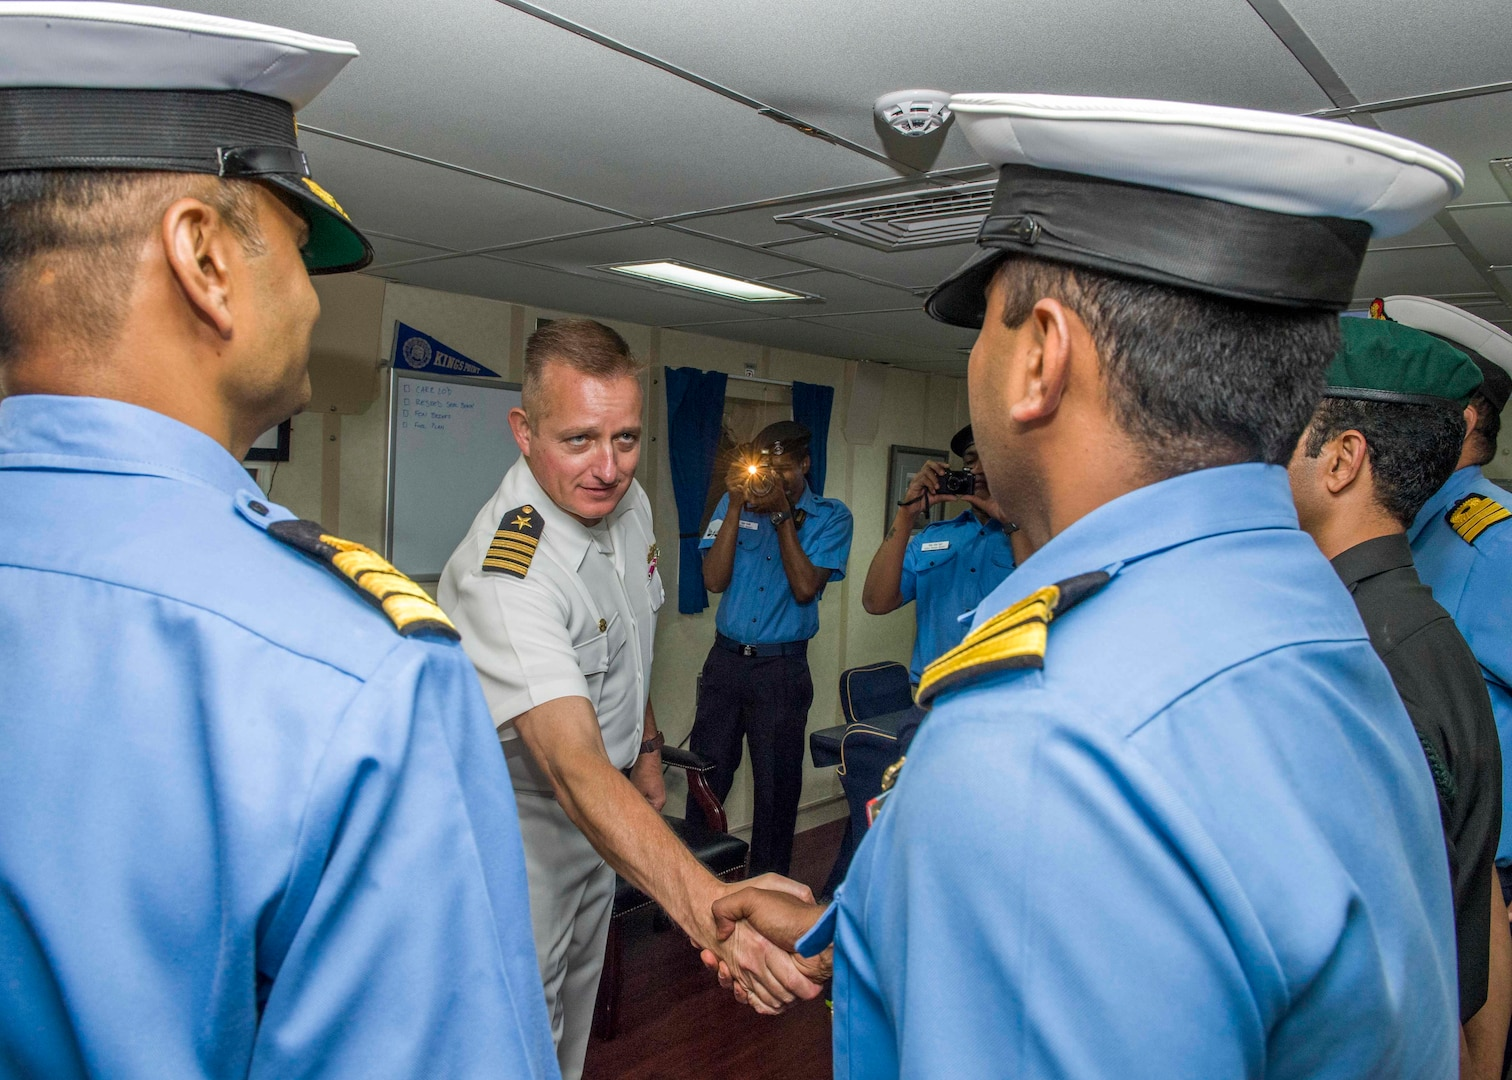 Capt. Dennis Jacko, from Sayerville, N.J., commanding officer of the San Antonio-class amphibious transport dock ship USS Anchorage (LPD 23), greets distinguished visitors from the Indian military during a port visit to Visakhapatnam, India, while on a deployment of the Essex Amphibious Ready Group (ARG) and 13th MEU. The Essex ARG/ 13th MEU is a capable and lethal Navy-Marine Corps team deployed to the 7th fleet area of operations to support regional stability, reassure partners and allies and maintain a presence postured to respond to any crisis ranging from humanitarian assistance to contingency operations.